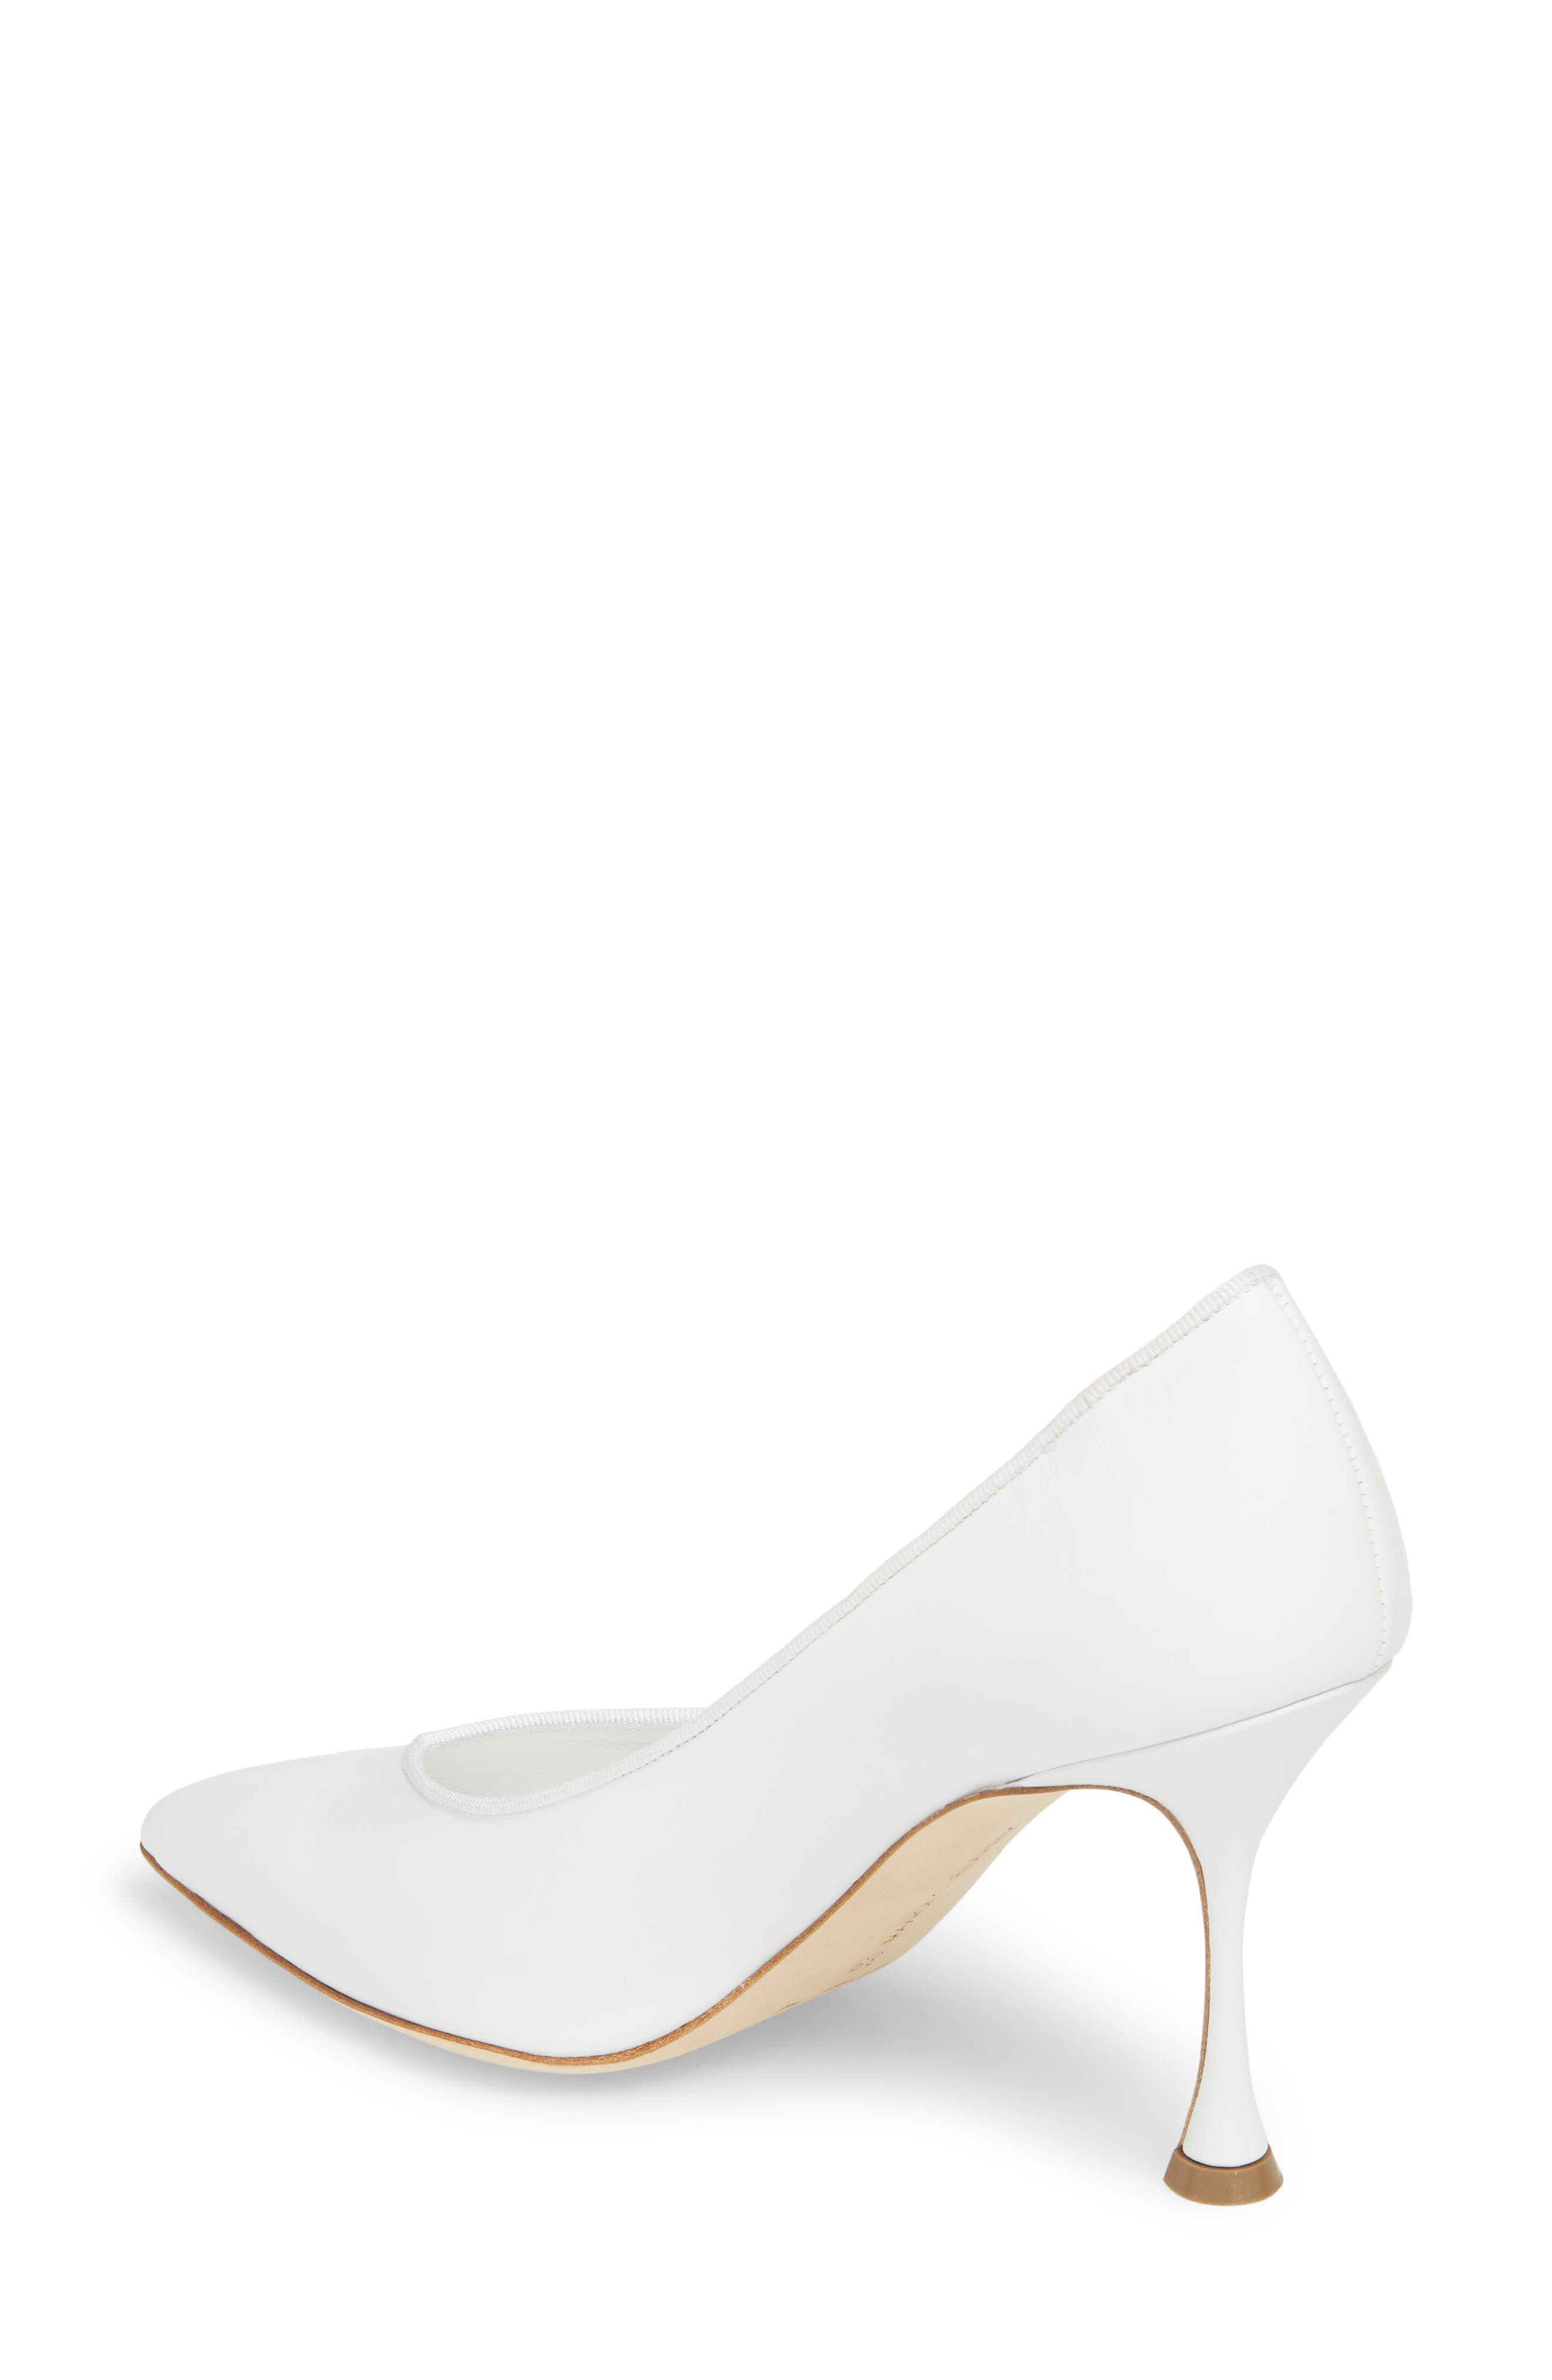 Urgenzapla Pointy Toe Pump,                             Alternate thumbnail 2, color,                             WHITE LEATHER